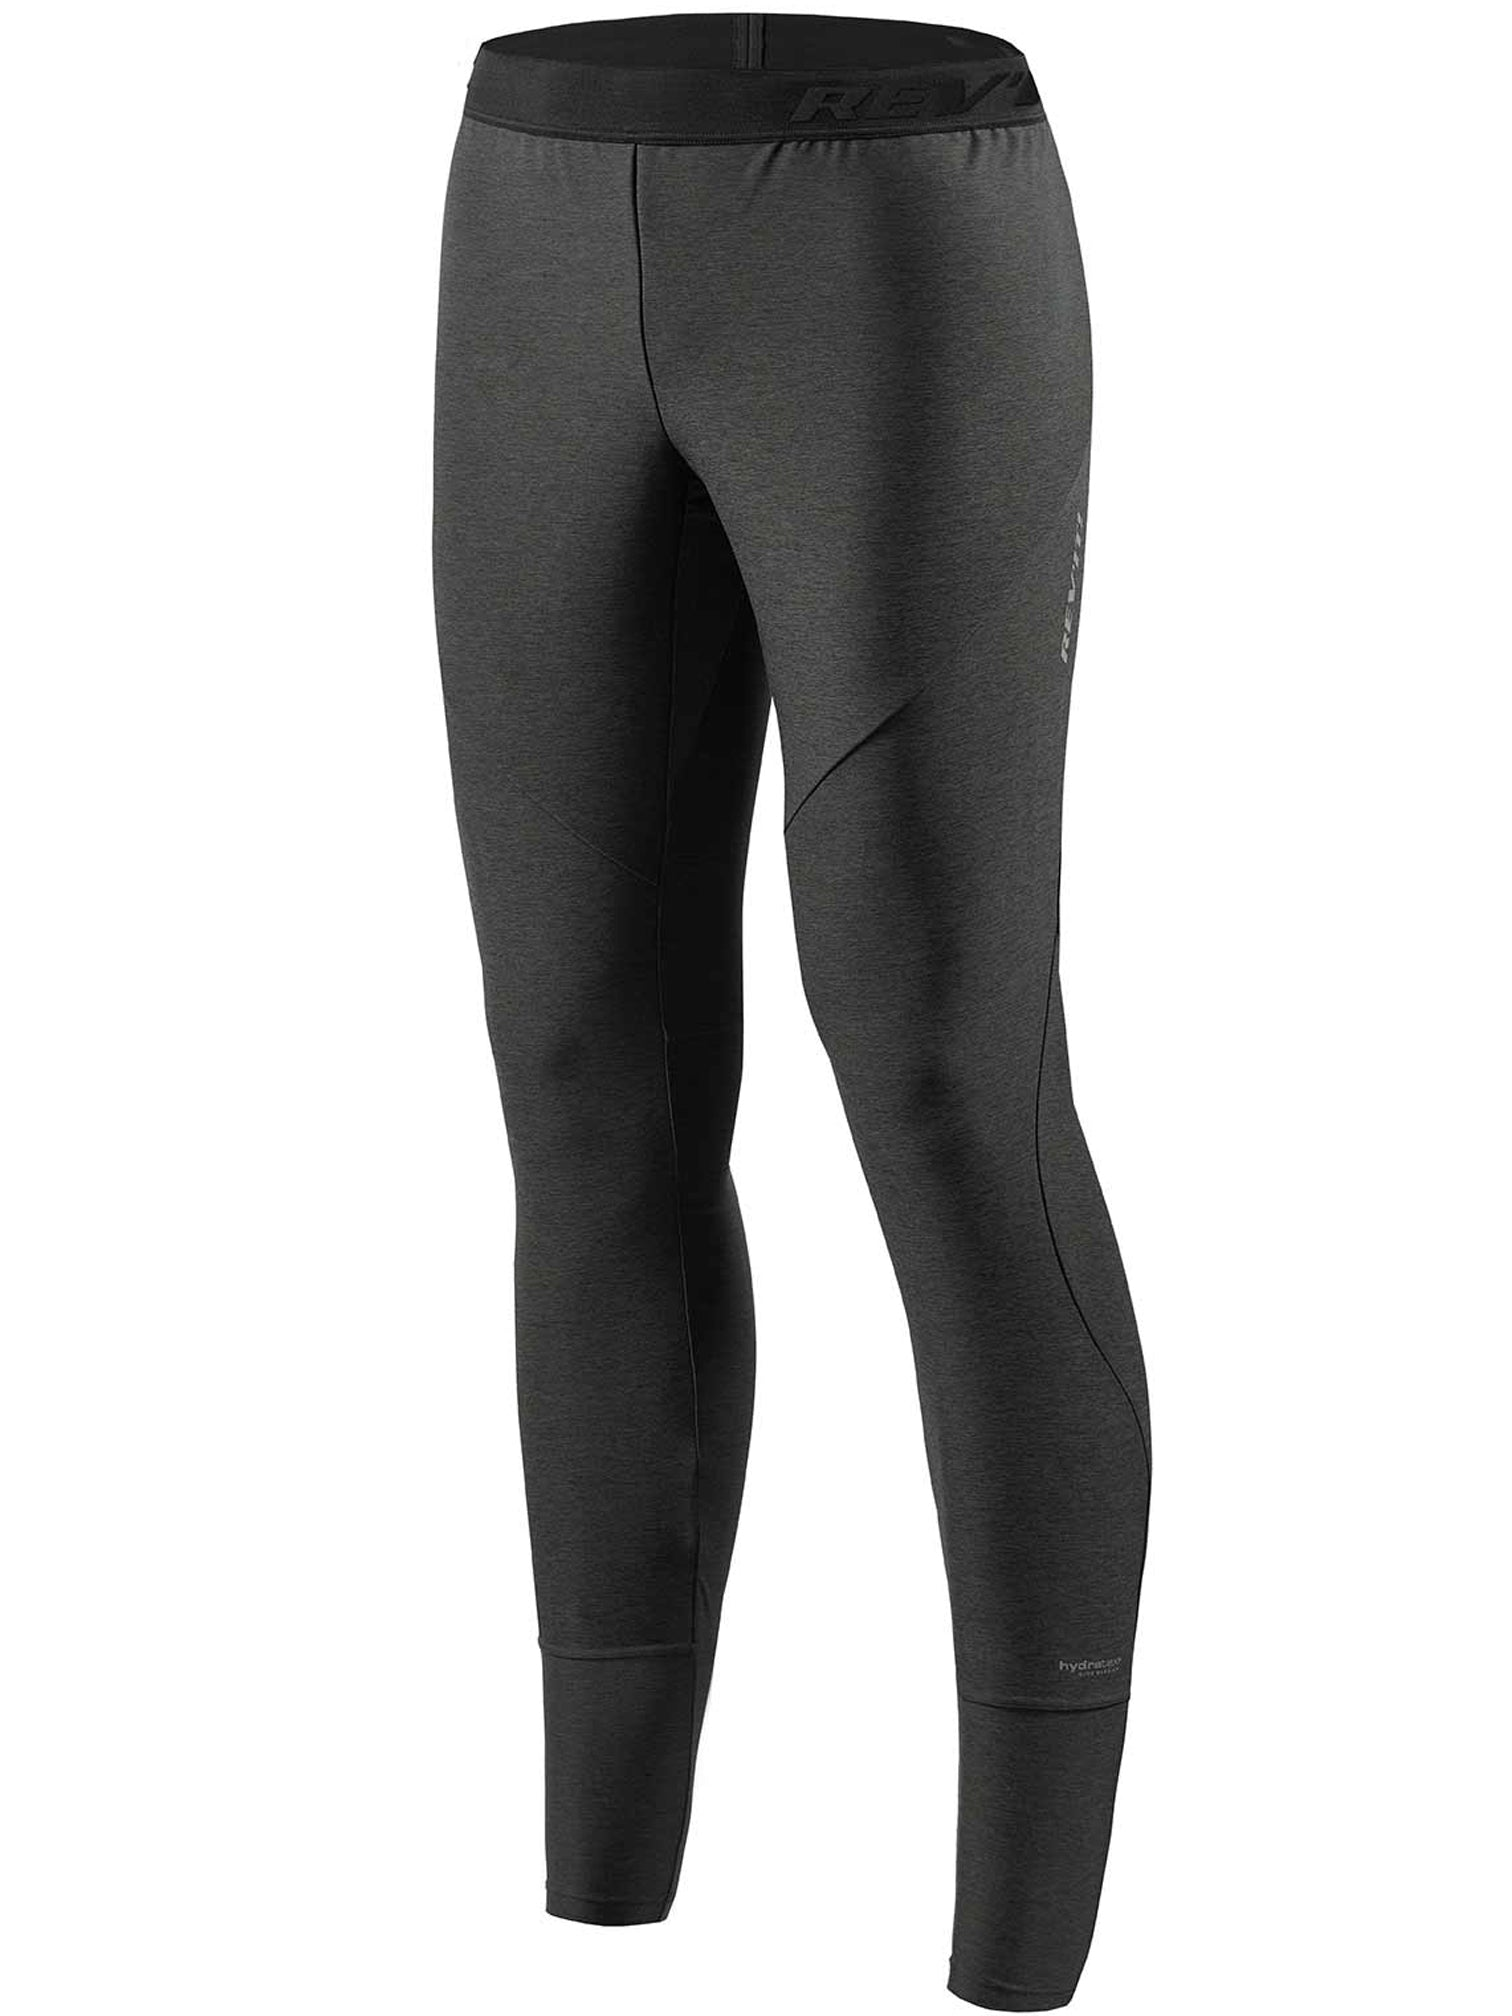 REV'IT! Storm WB Men's Base Layer Pants - 421 Moto Gear